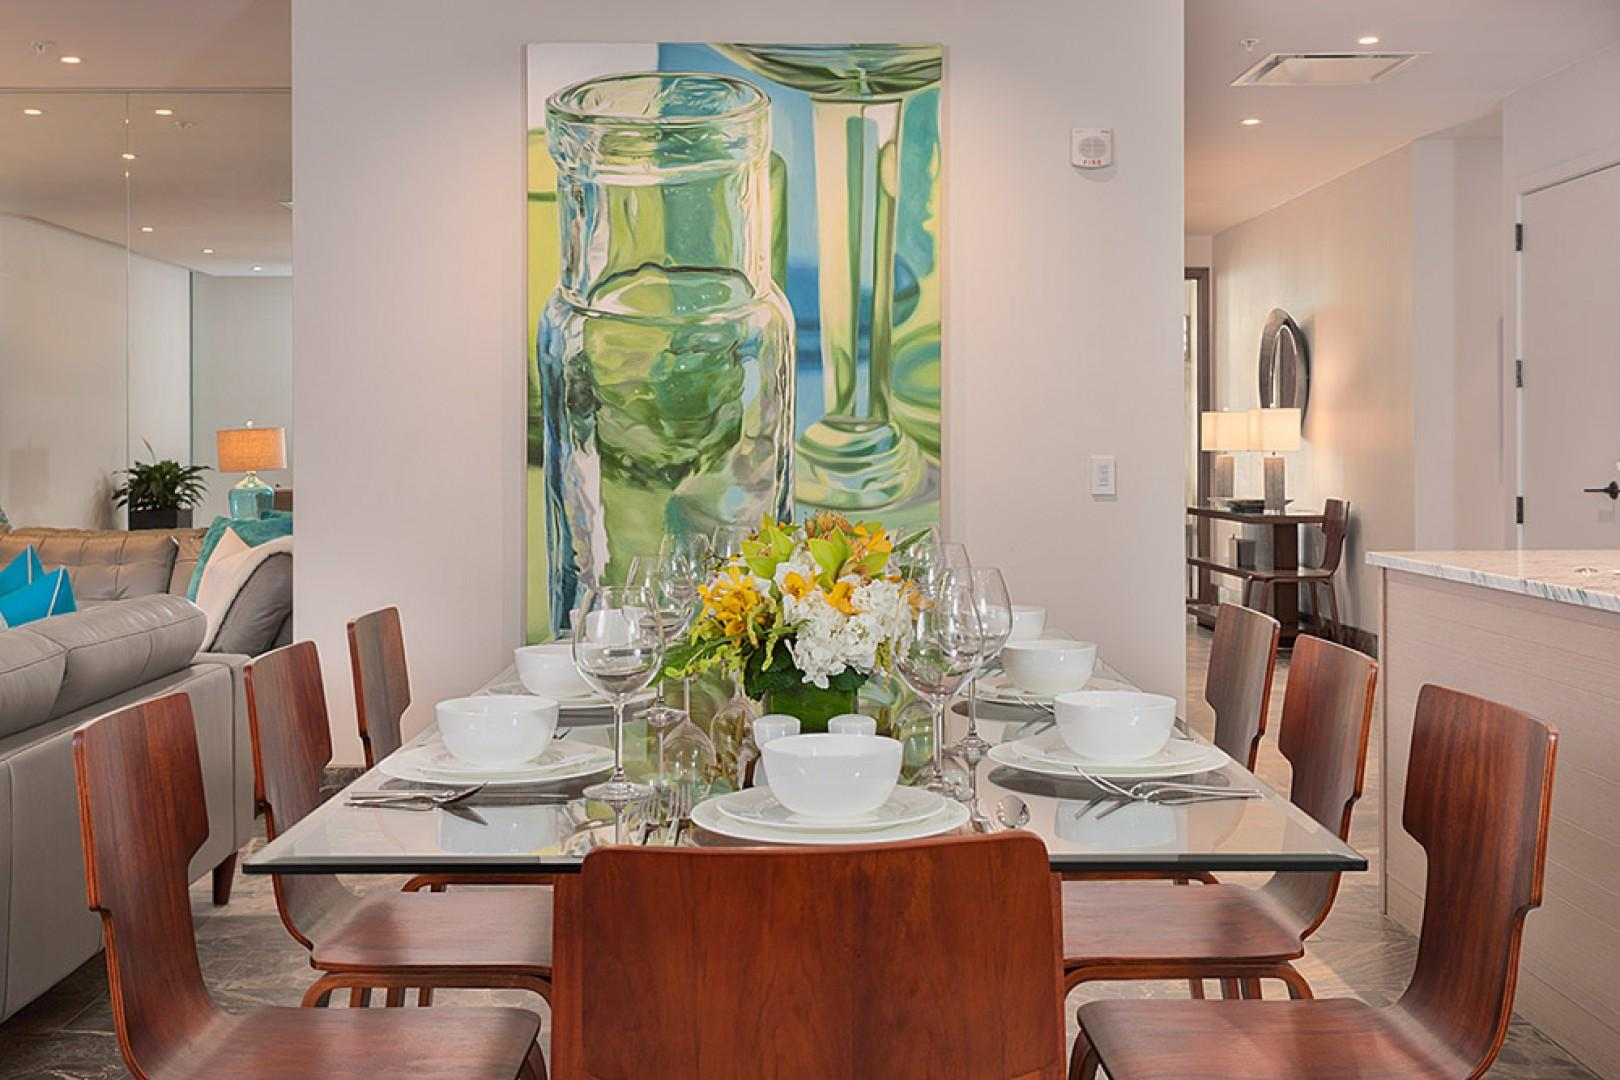 SeaGlass Villa 810 at Andaz Maui Wailea Resort - Spacious Indoor Dining for Eight with Contemporary Decor and Bold Artwork